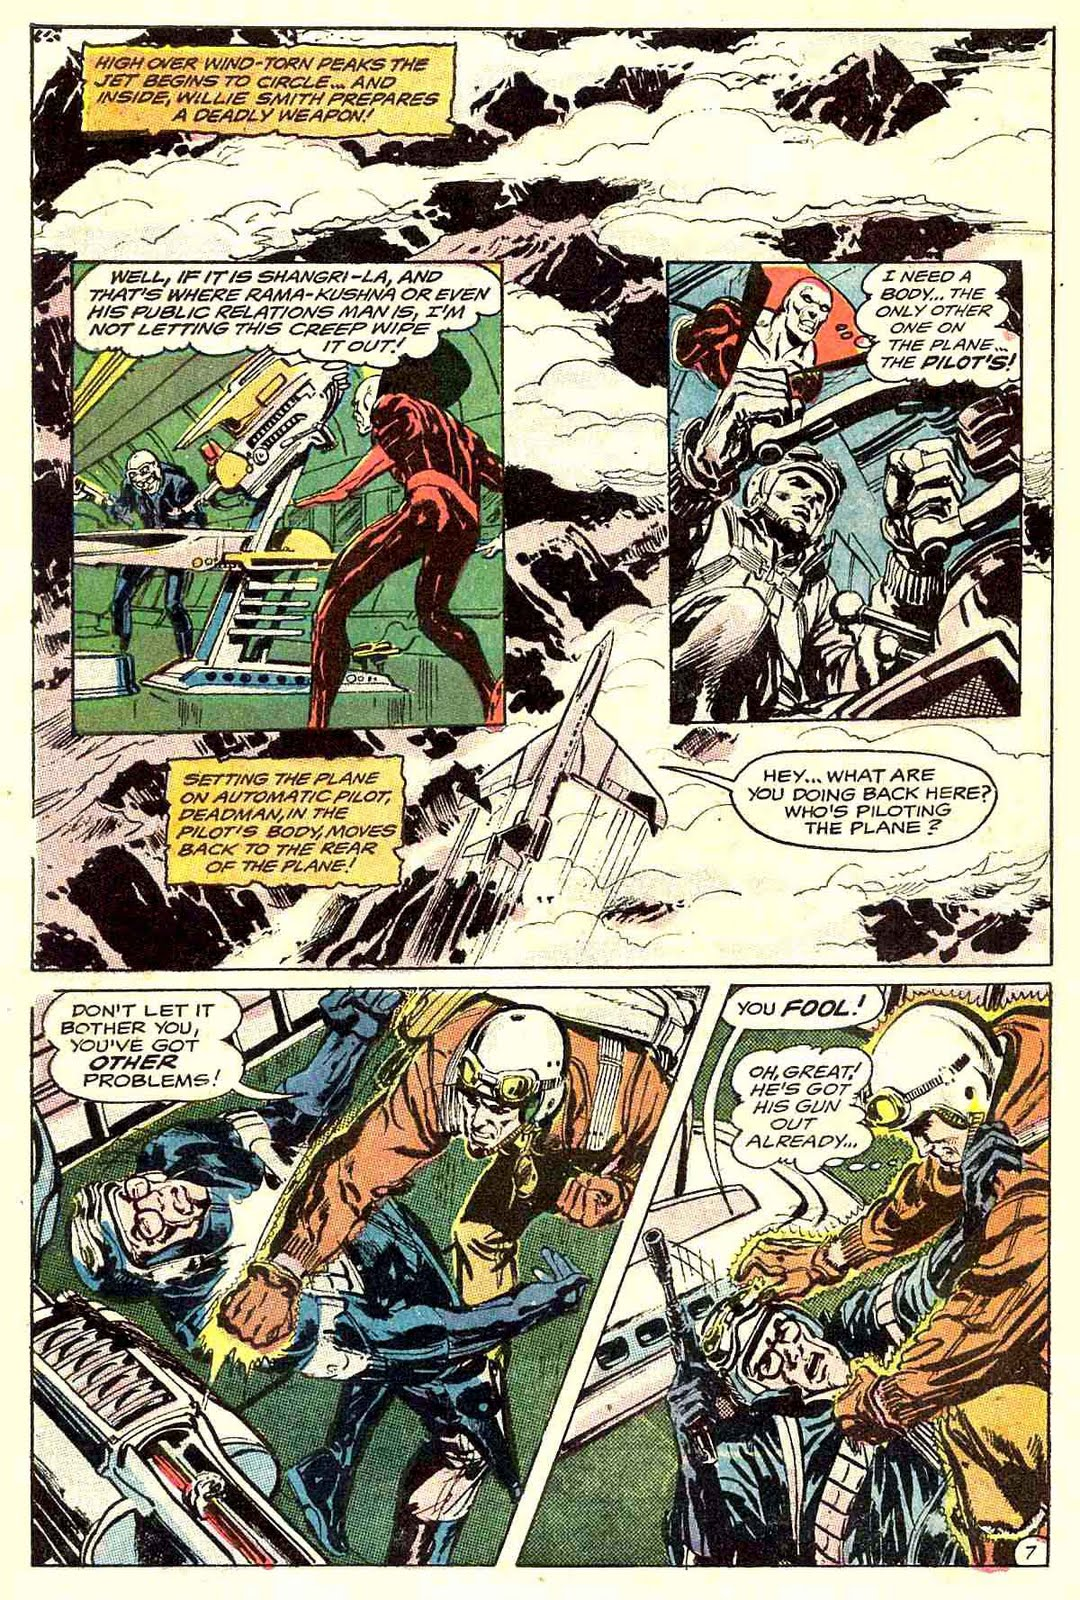 Strange Adventures v1 #216 dc 1960s silver age comic book page art by Neal Adams